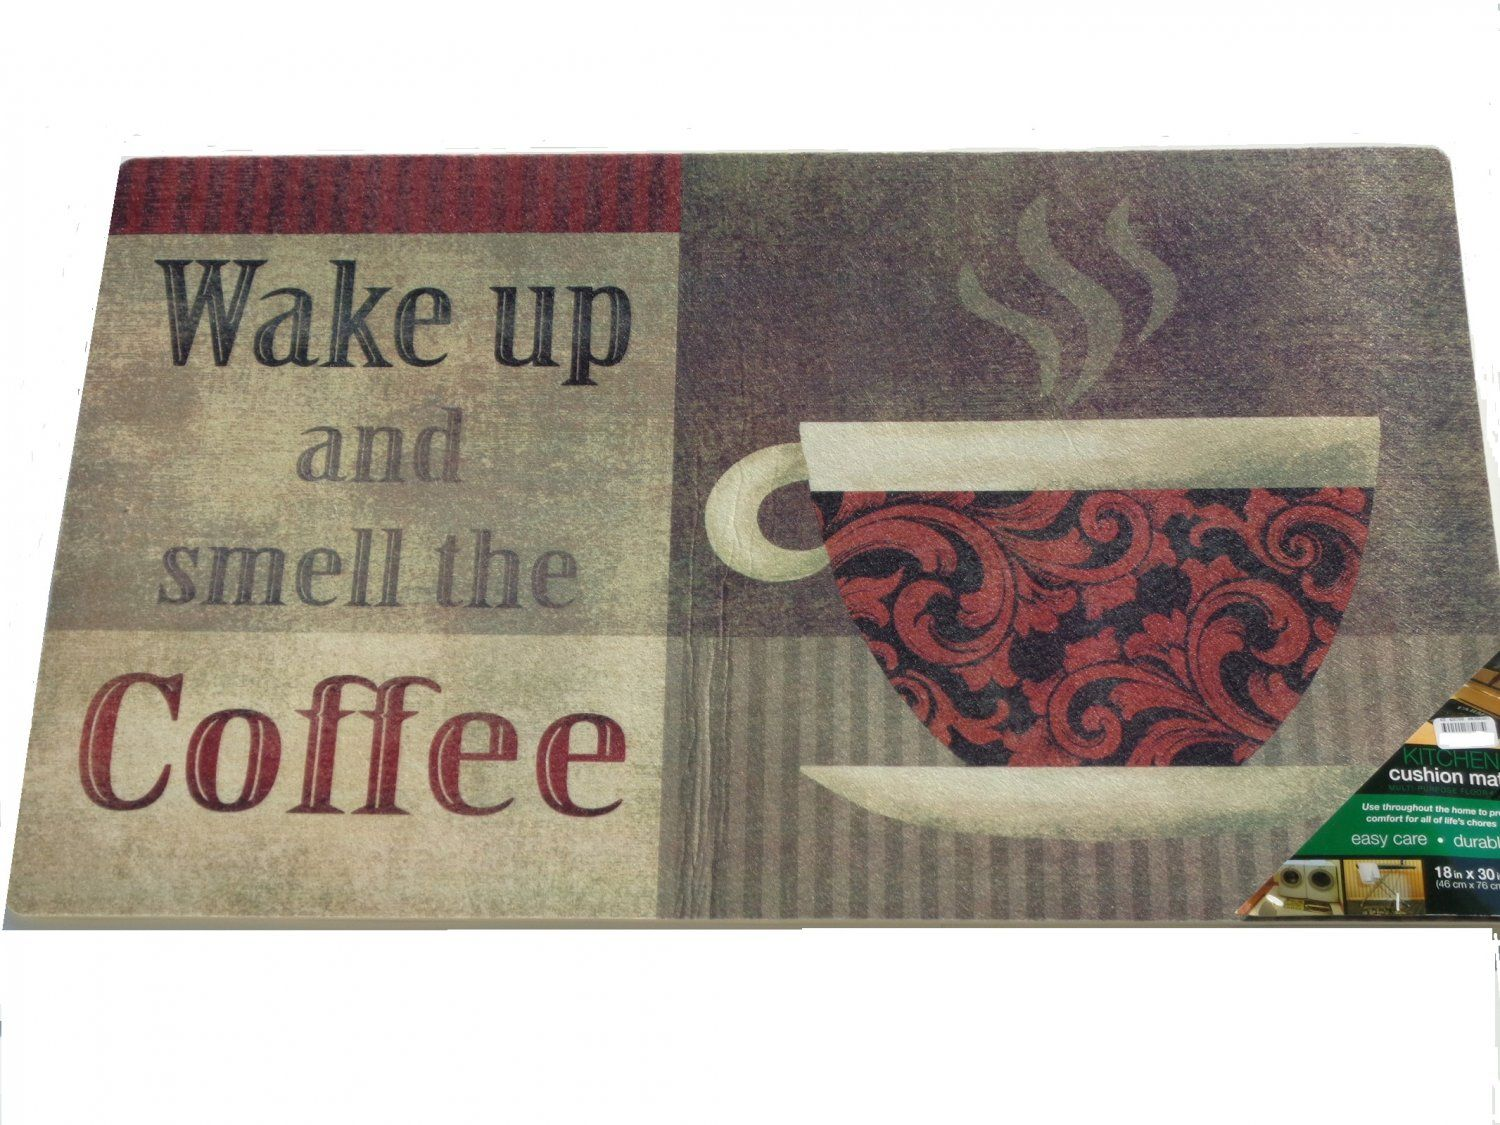 Wake Up And Smell The Coffee Kitchen Rug Cushion Mat 19 95